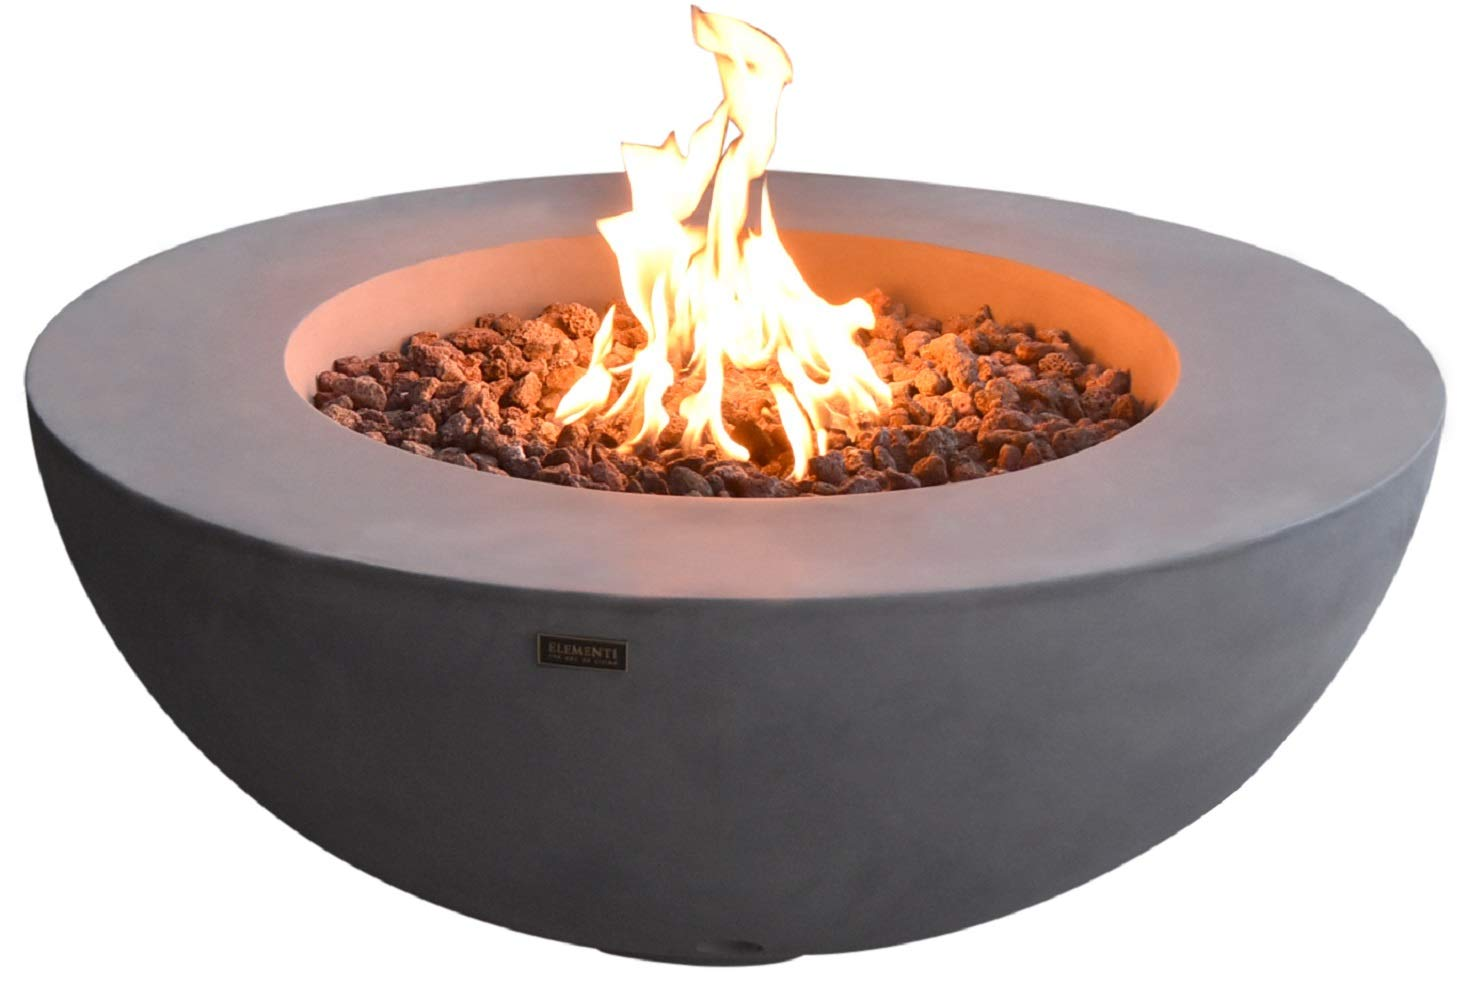 Elementi Lunar Bowl Outdoor Table 42 Inches Fire Pit Patio Heater Concrete Firepits Outside Electronic Ignition Backyard Fireplace Cover Lava Rock Included, Natural Gas